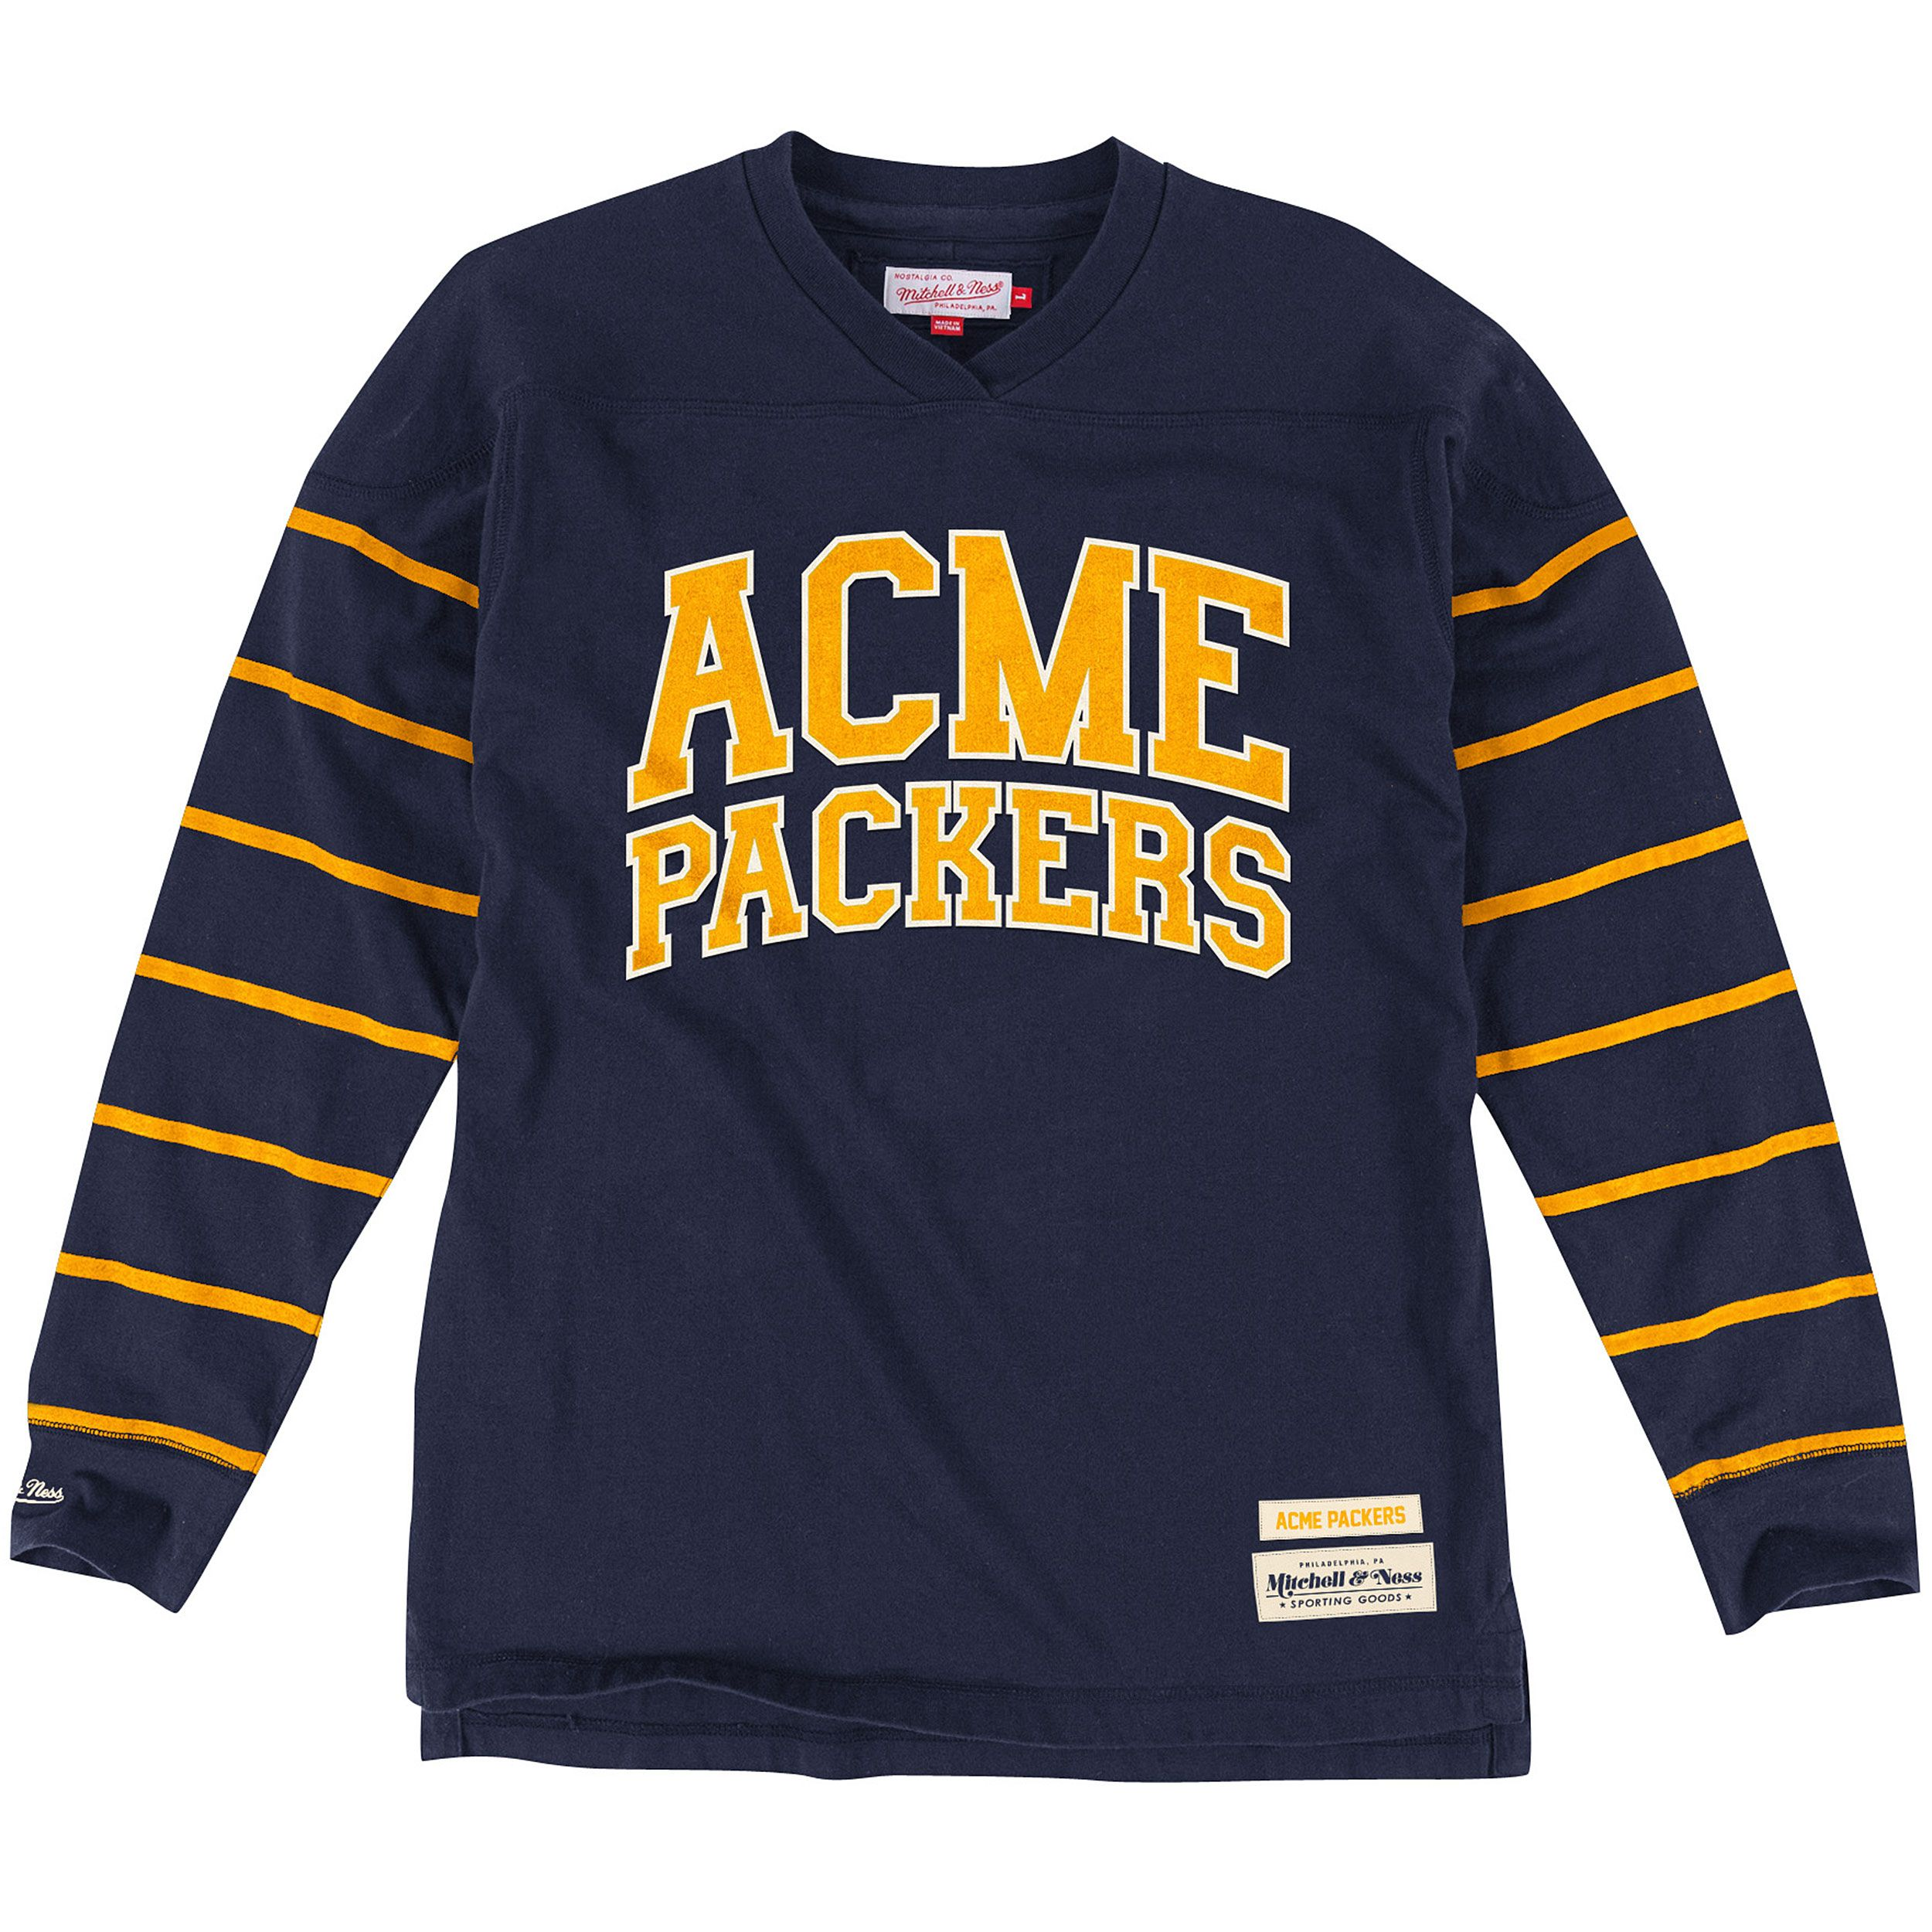 online store 8e29e b98bf Acme Packers Cornerback Jersey Top at the Packers Pro Shop ...